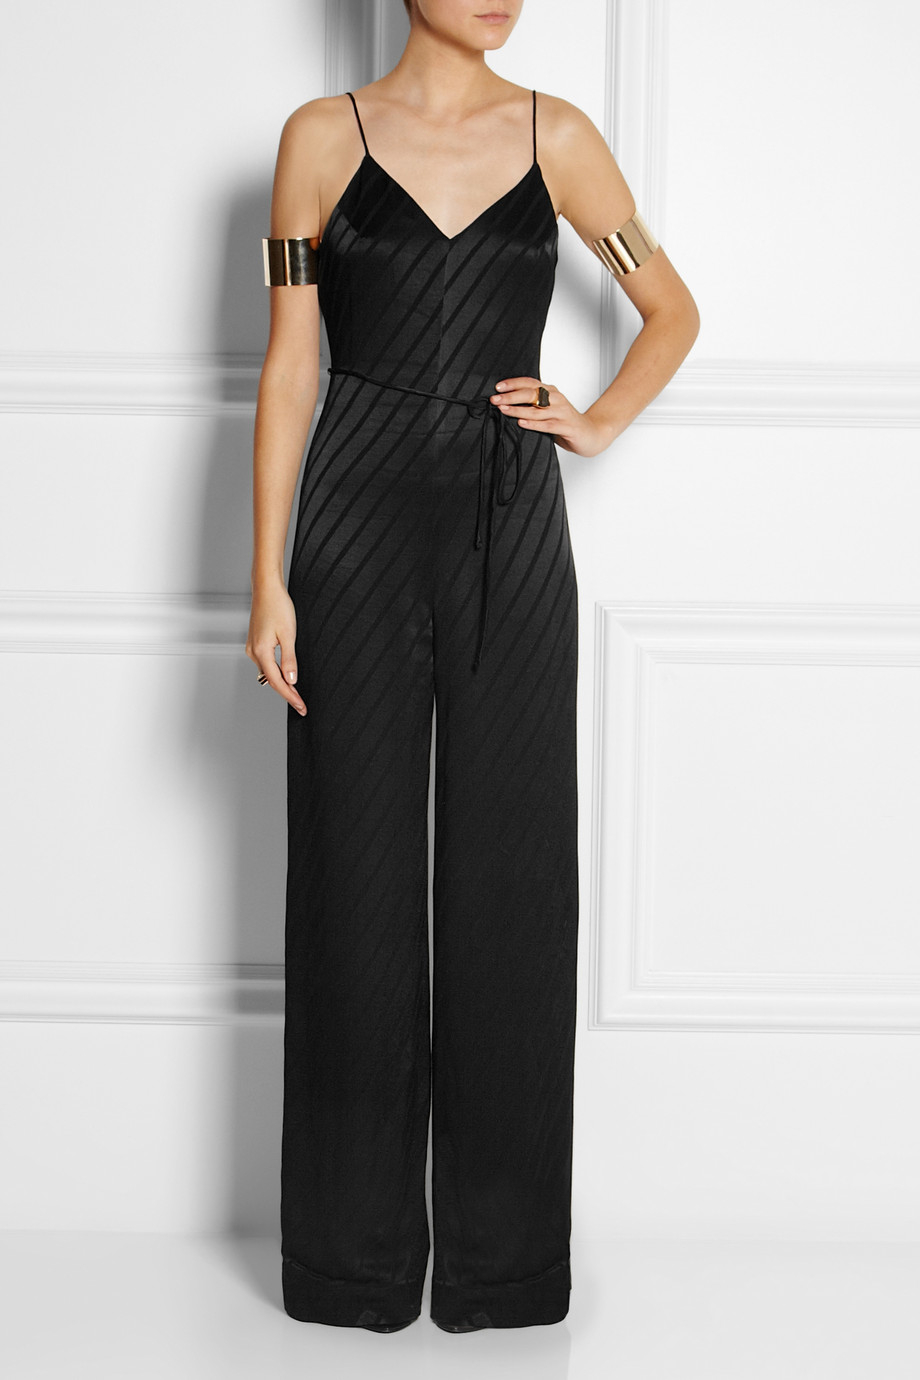 Topshop Striped Satin Jumpsuit In Black Lyst